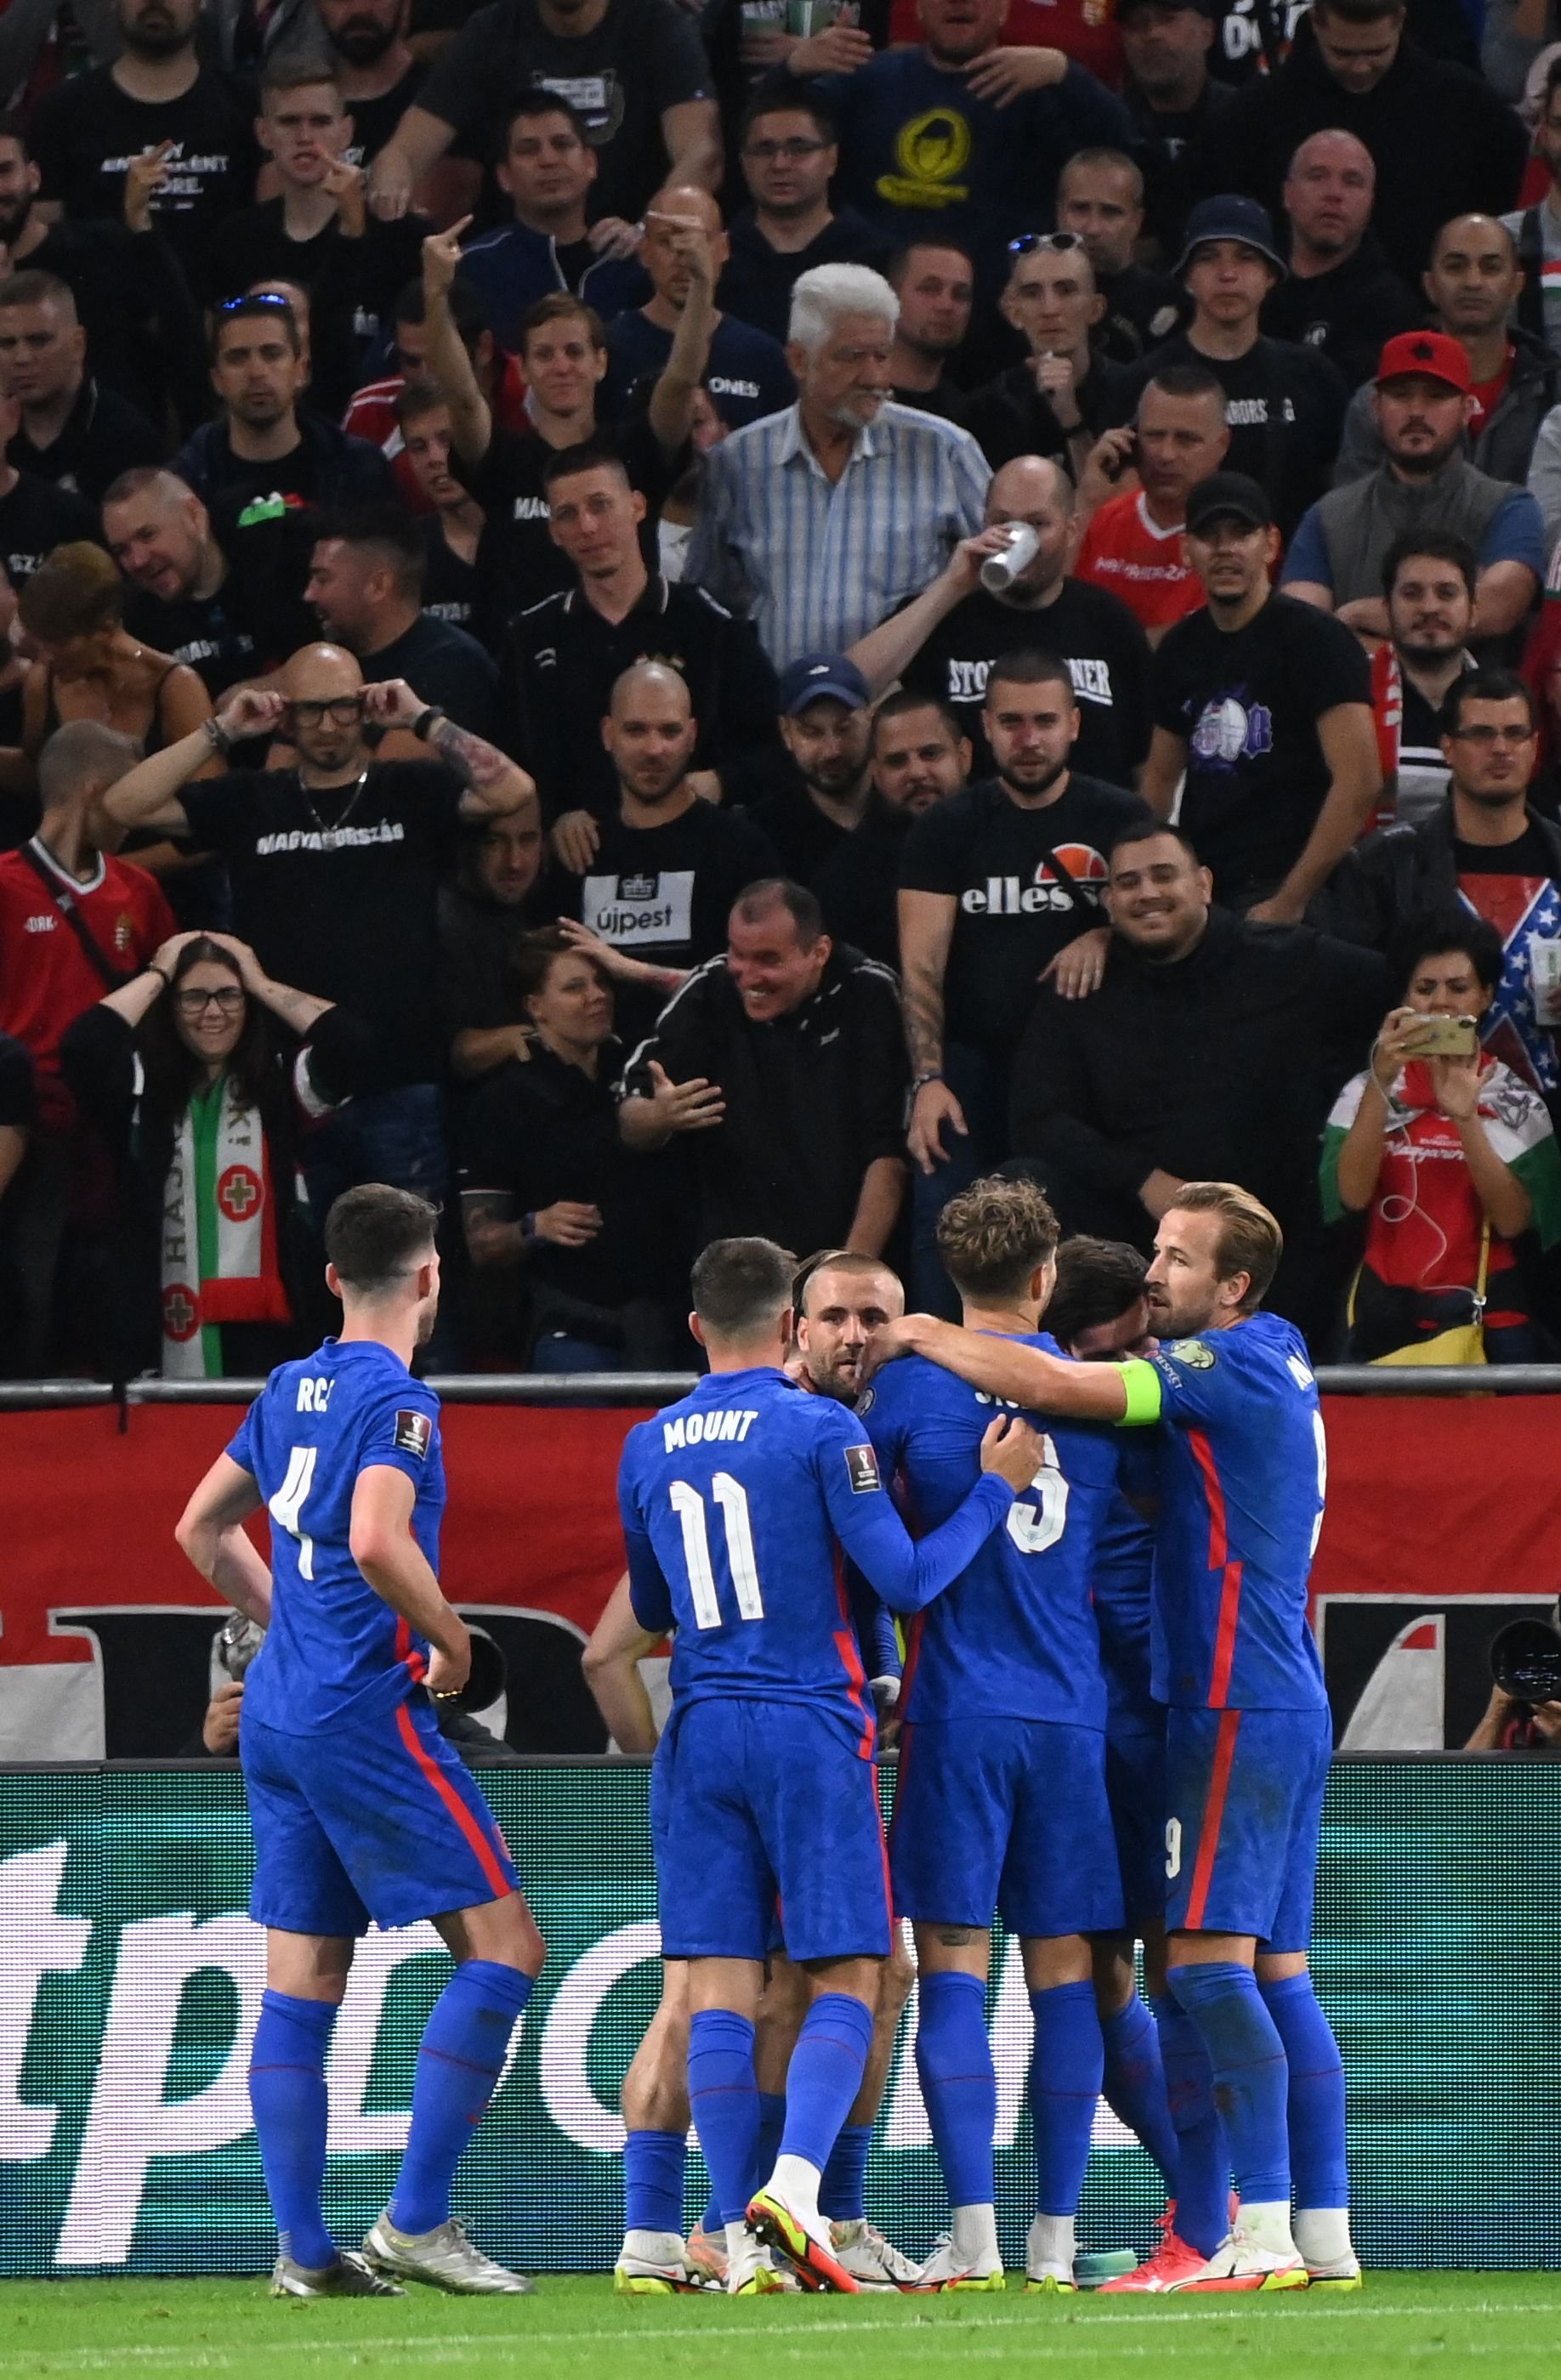 England's players celebrate their 0-3 win over Hungary in a 2022 FIFA World Cup qualifier at the Puskas Arena, Budapest, Hungary, Sept. 2, 2021. (AFP Photo)